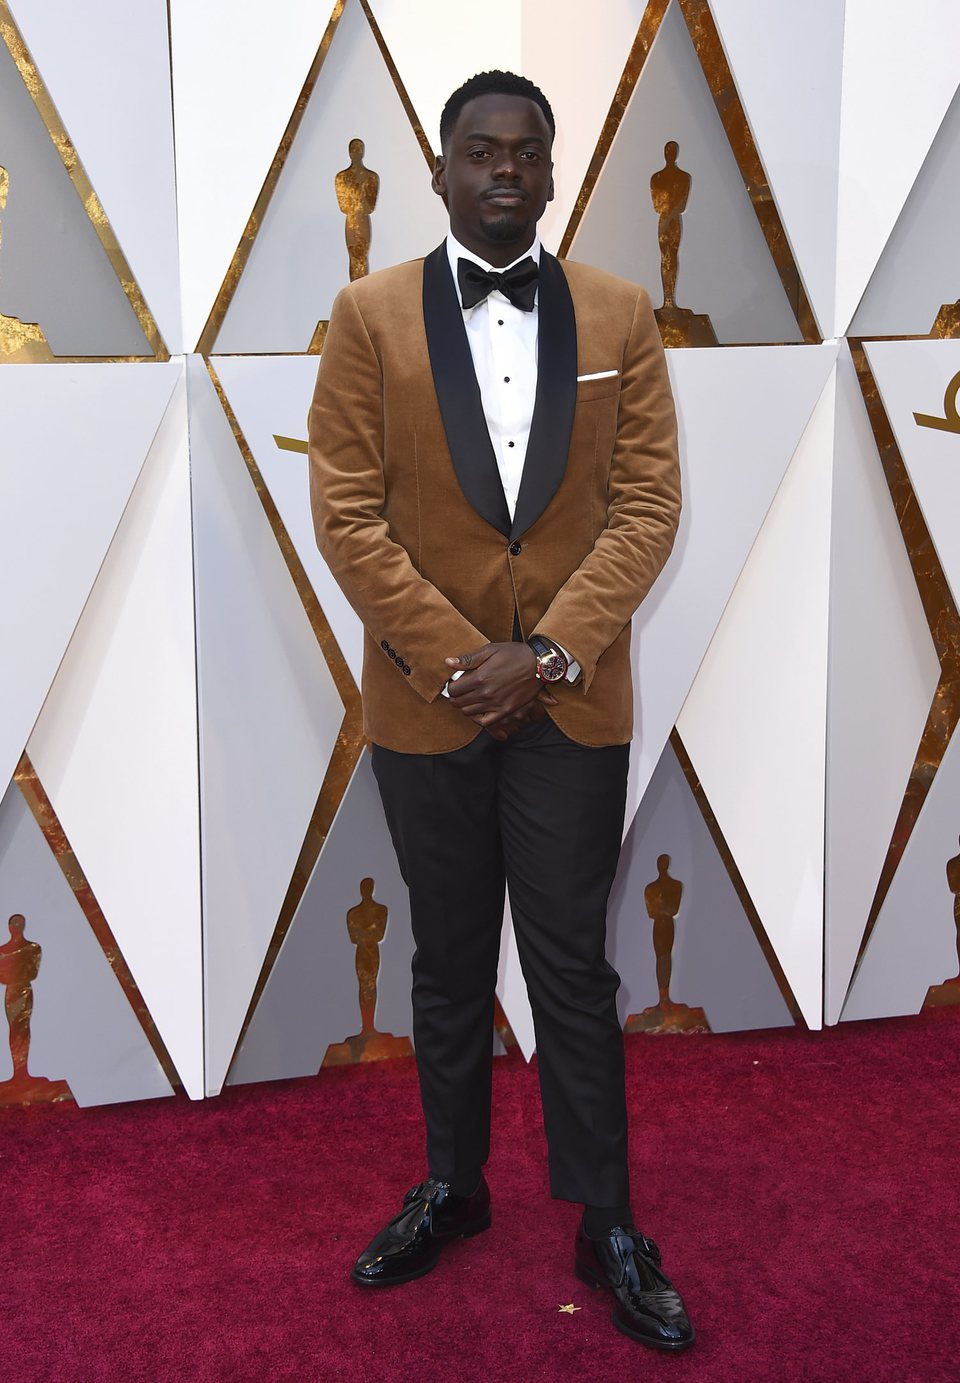 Daniel Kaluuya at the Oscars 2018 red carpet